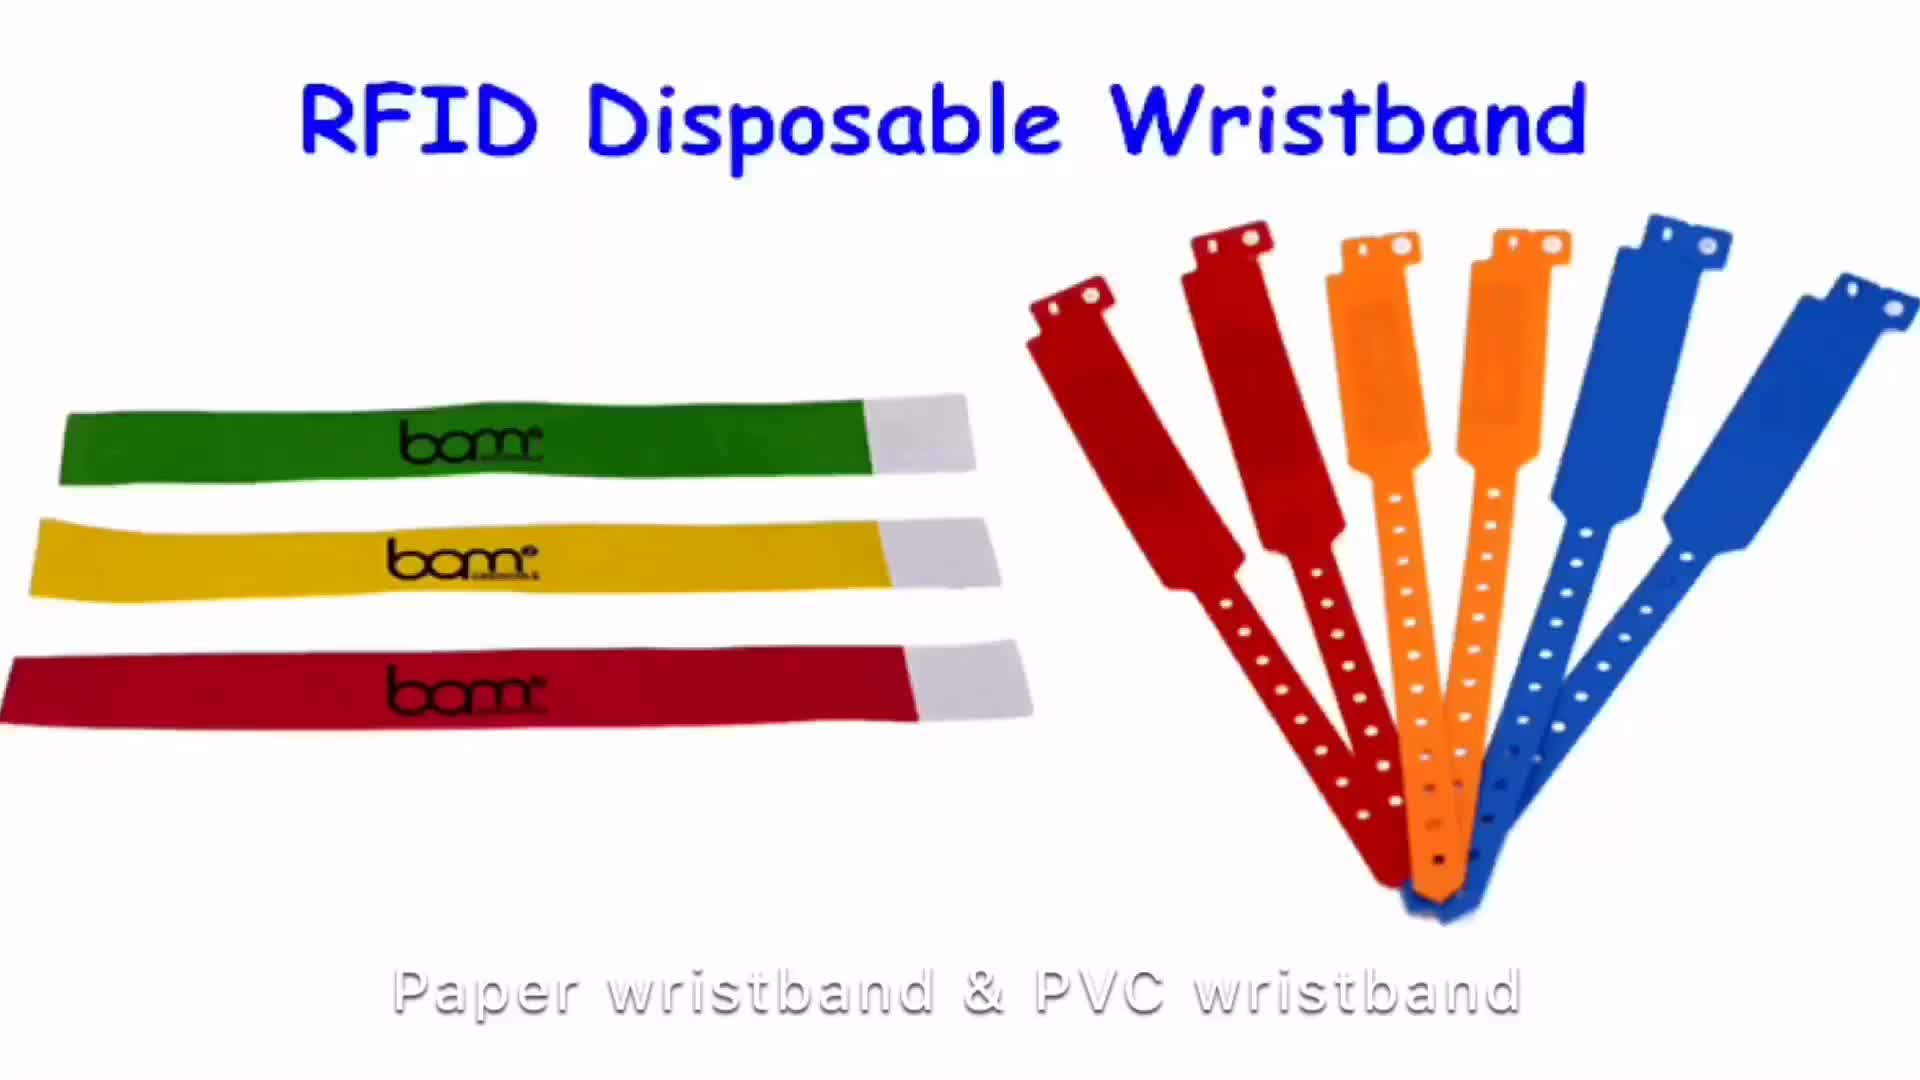 Cheap custom logo printing souvenirs event disposable tyvk paper wristbands in colors